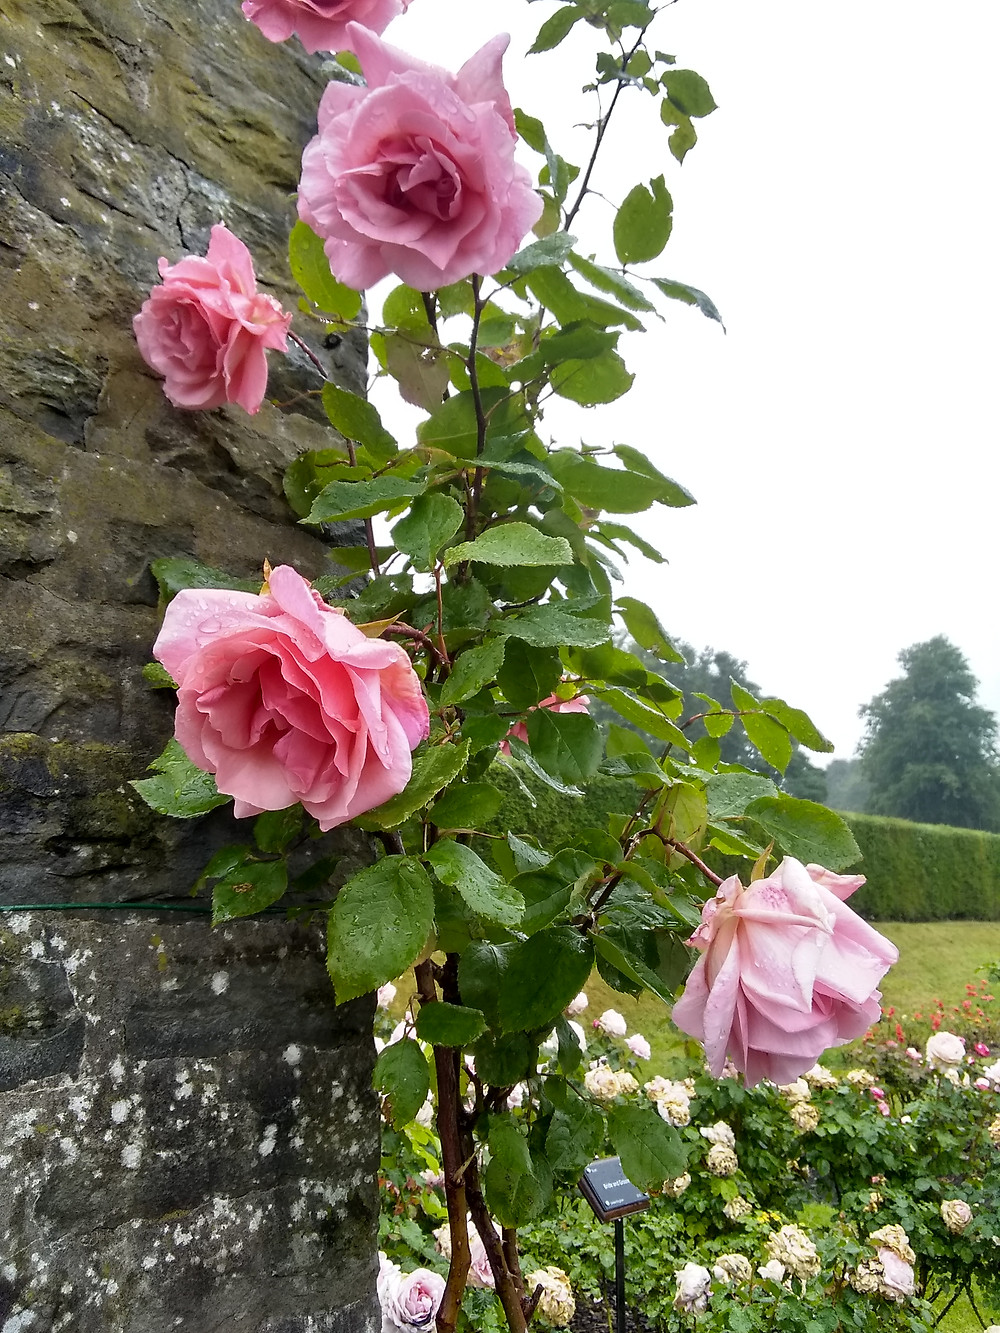 pink roses climbing a wall, wet from rain